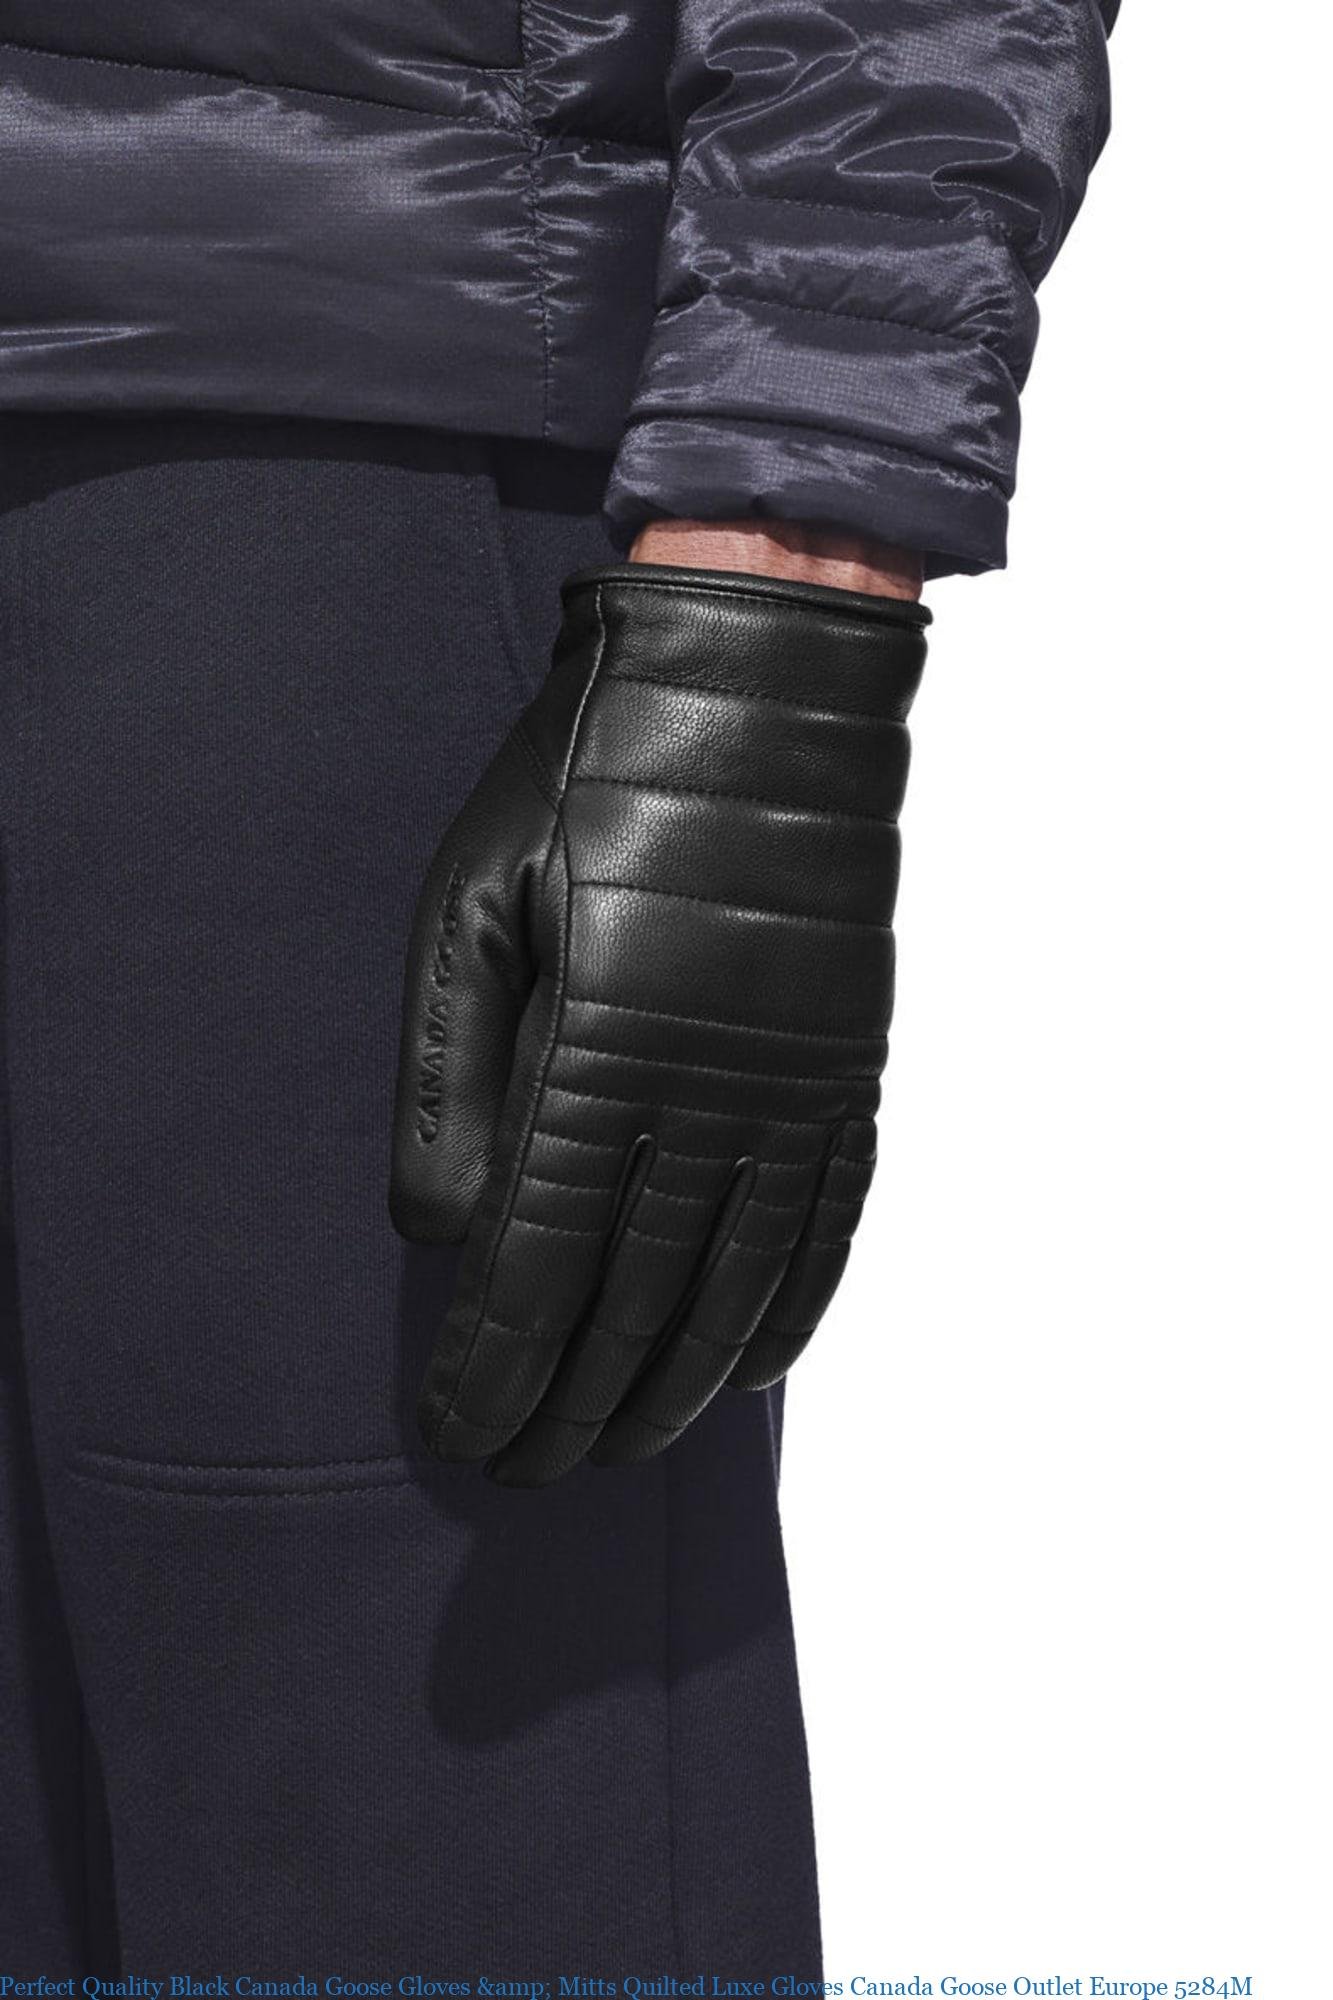 Perfect Quality Black Canada Goose Gloves Mitts Quilted Luxe Gloves Canada Goose Outlet Europe 5284m